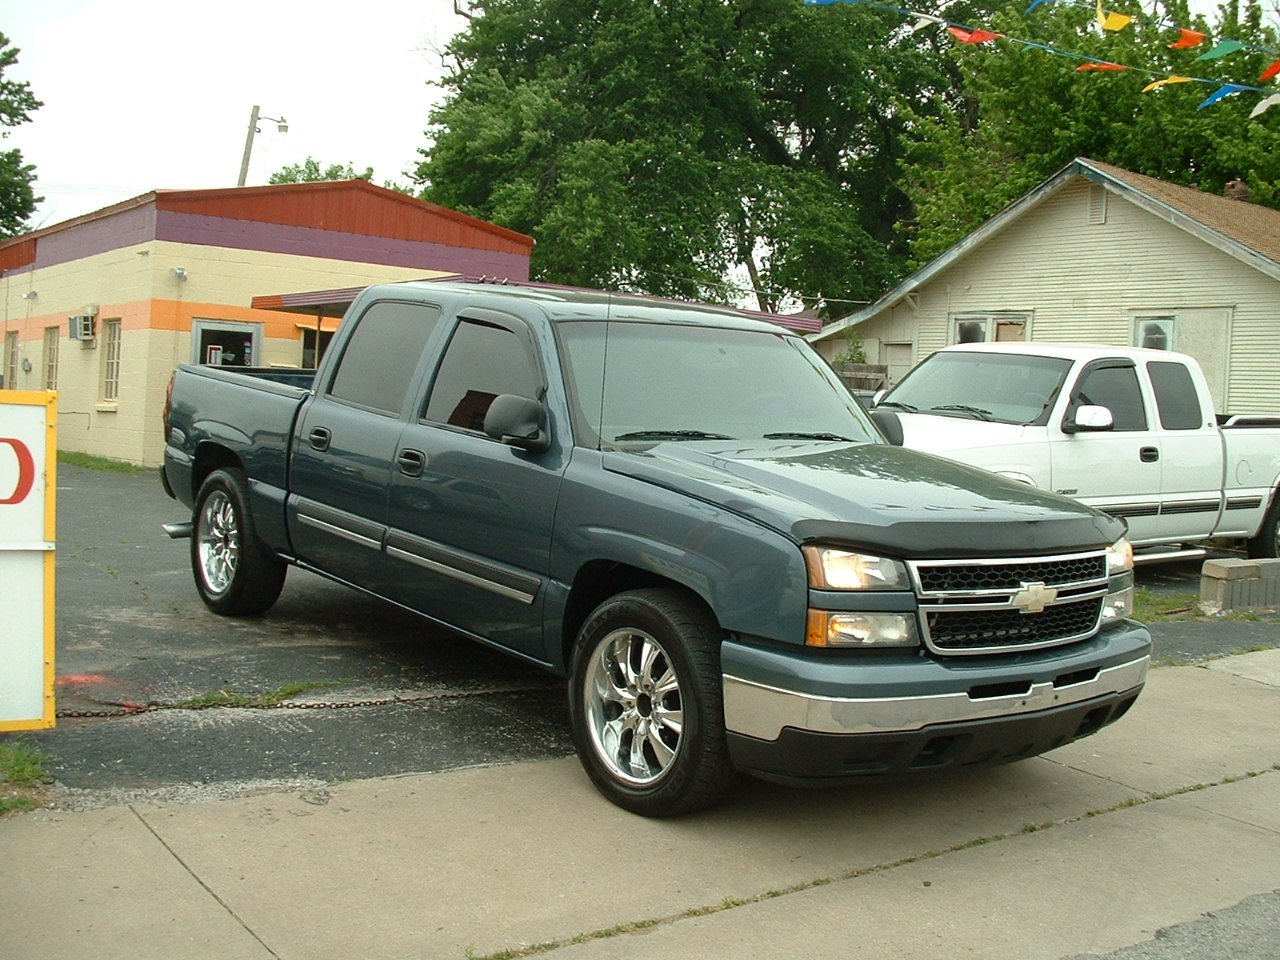 2006 chevrolet silverado 1500 pictures cargurus. Black Bedroom Furniture Sets. Home Design Ideas